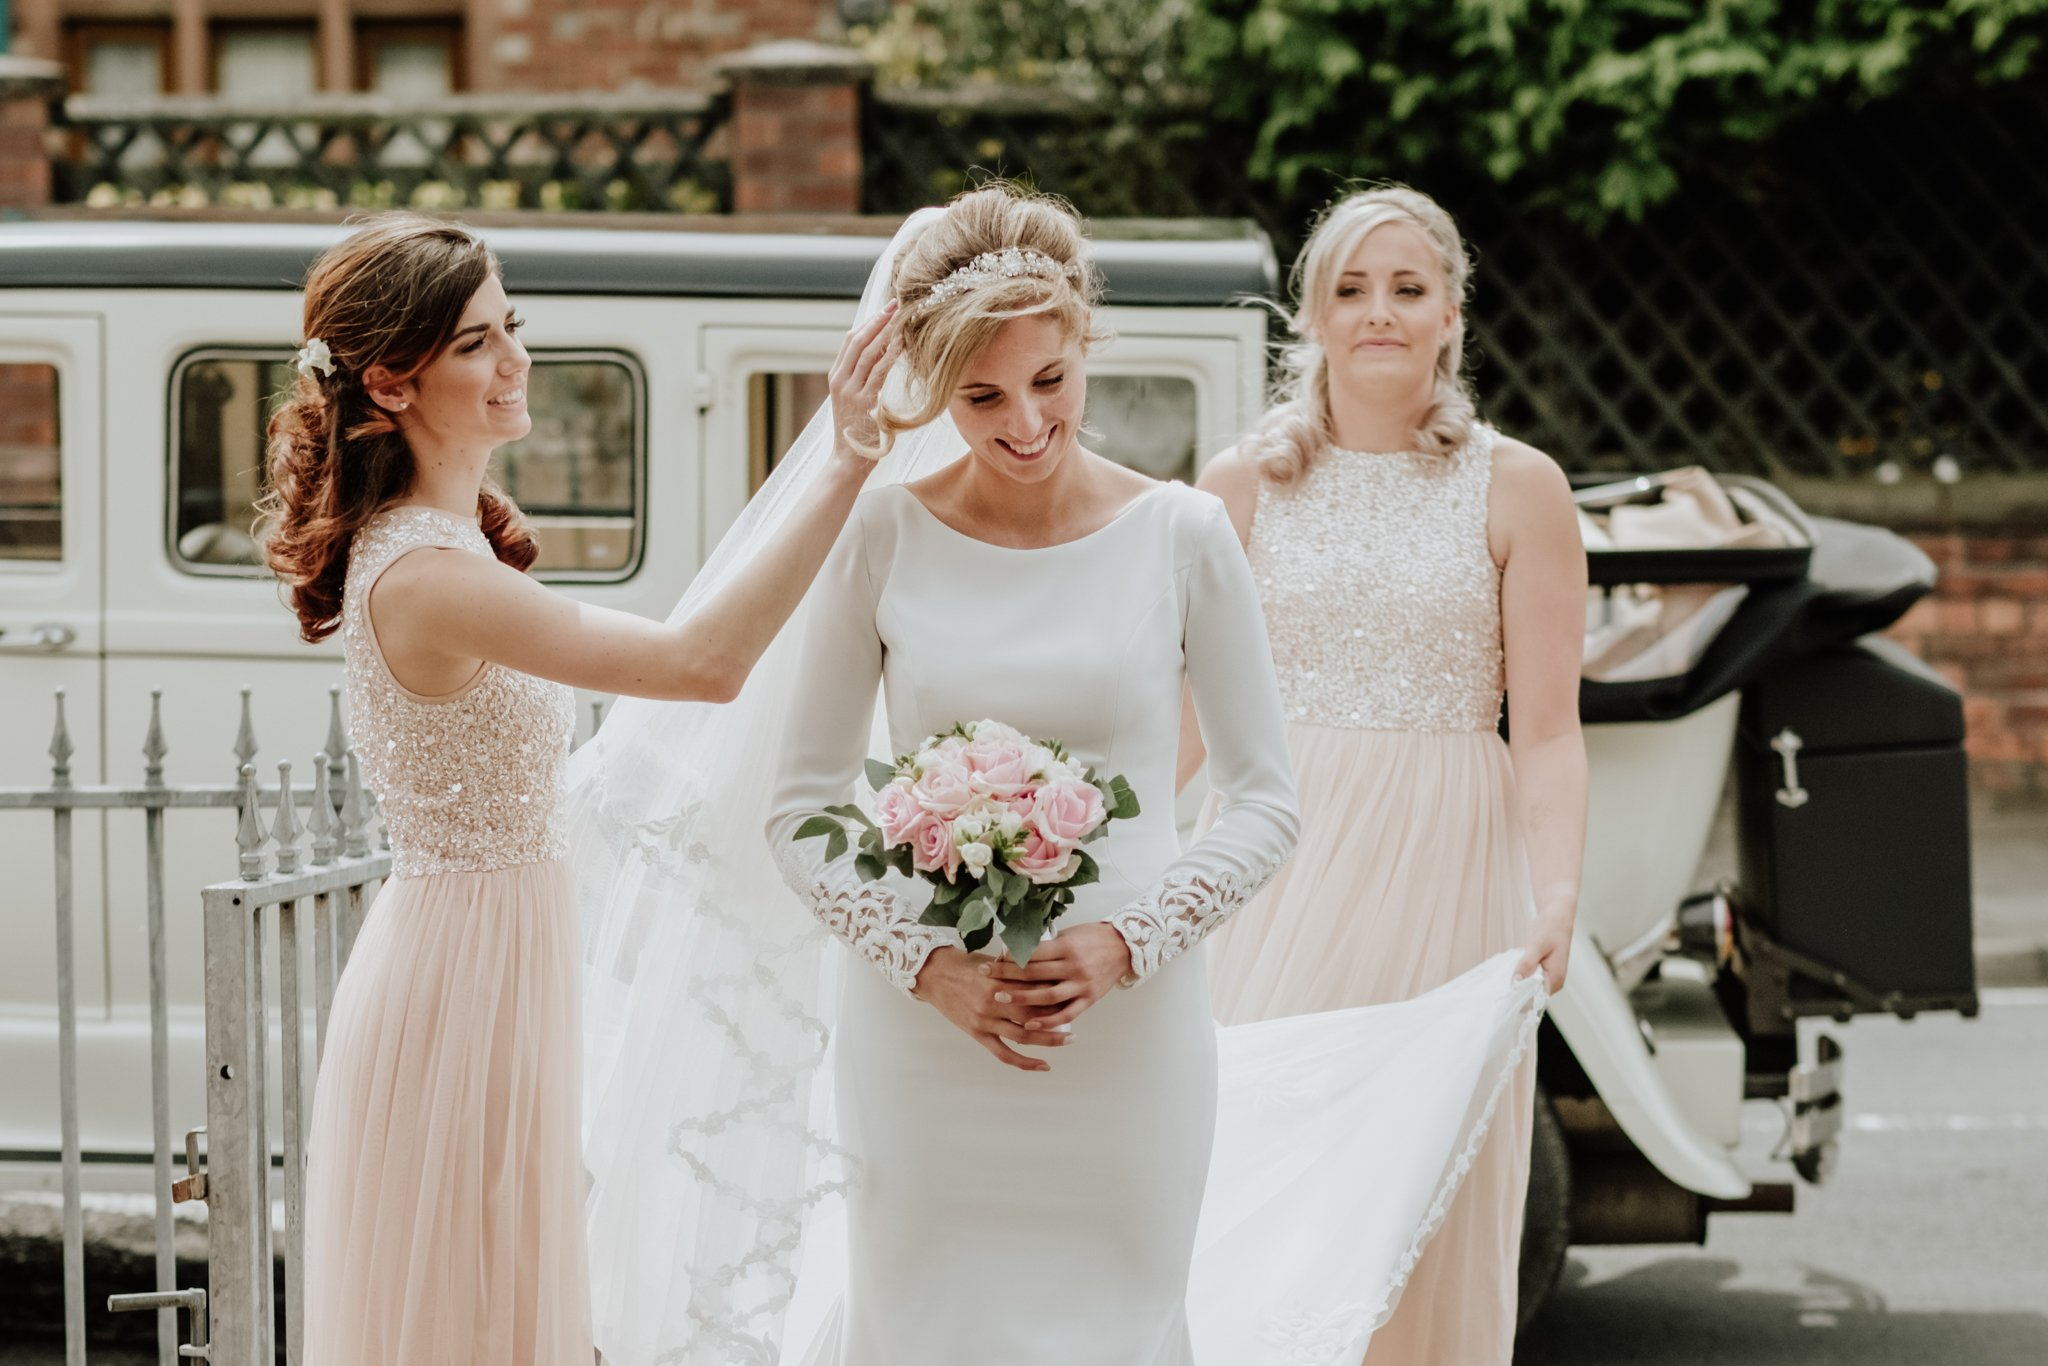 bride arriving at the church with her bridesmaids